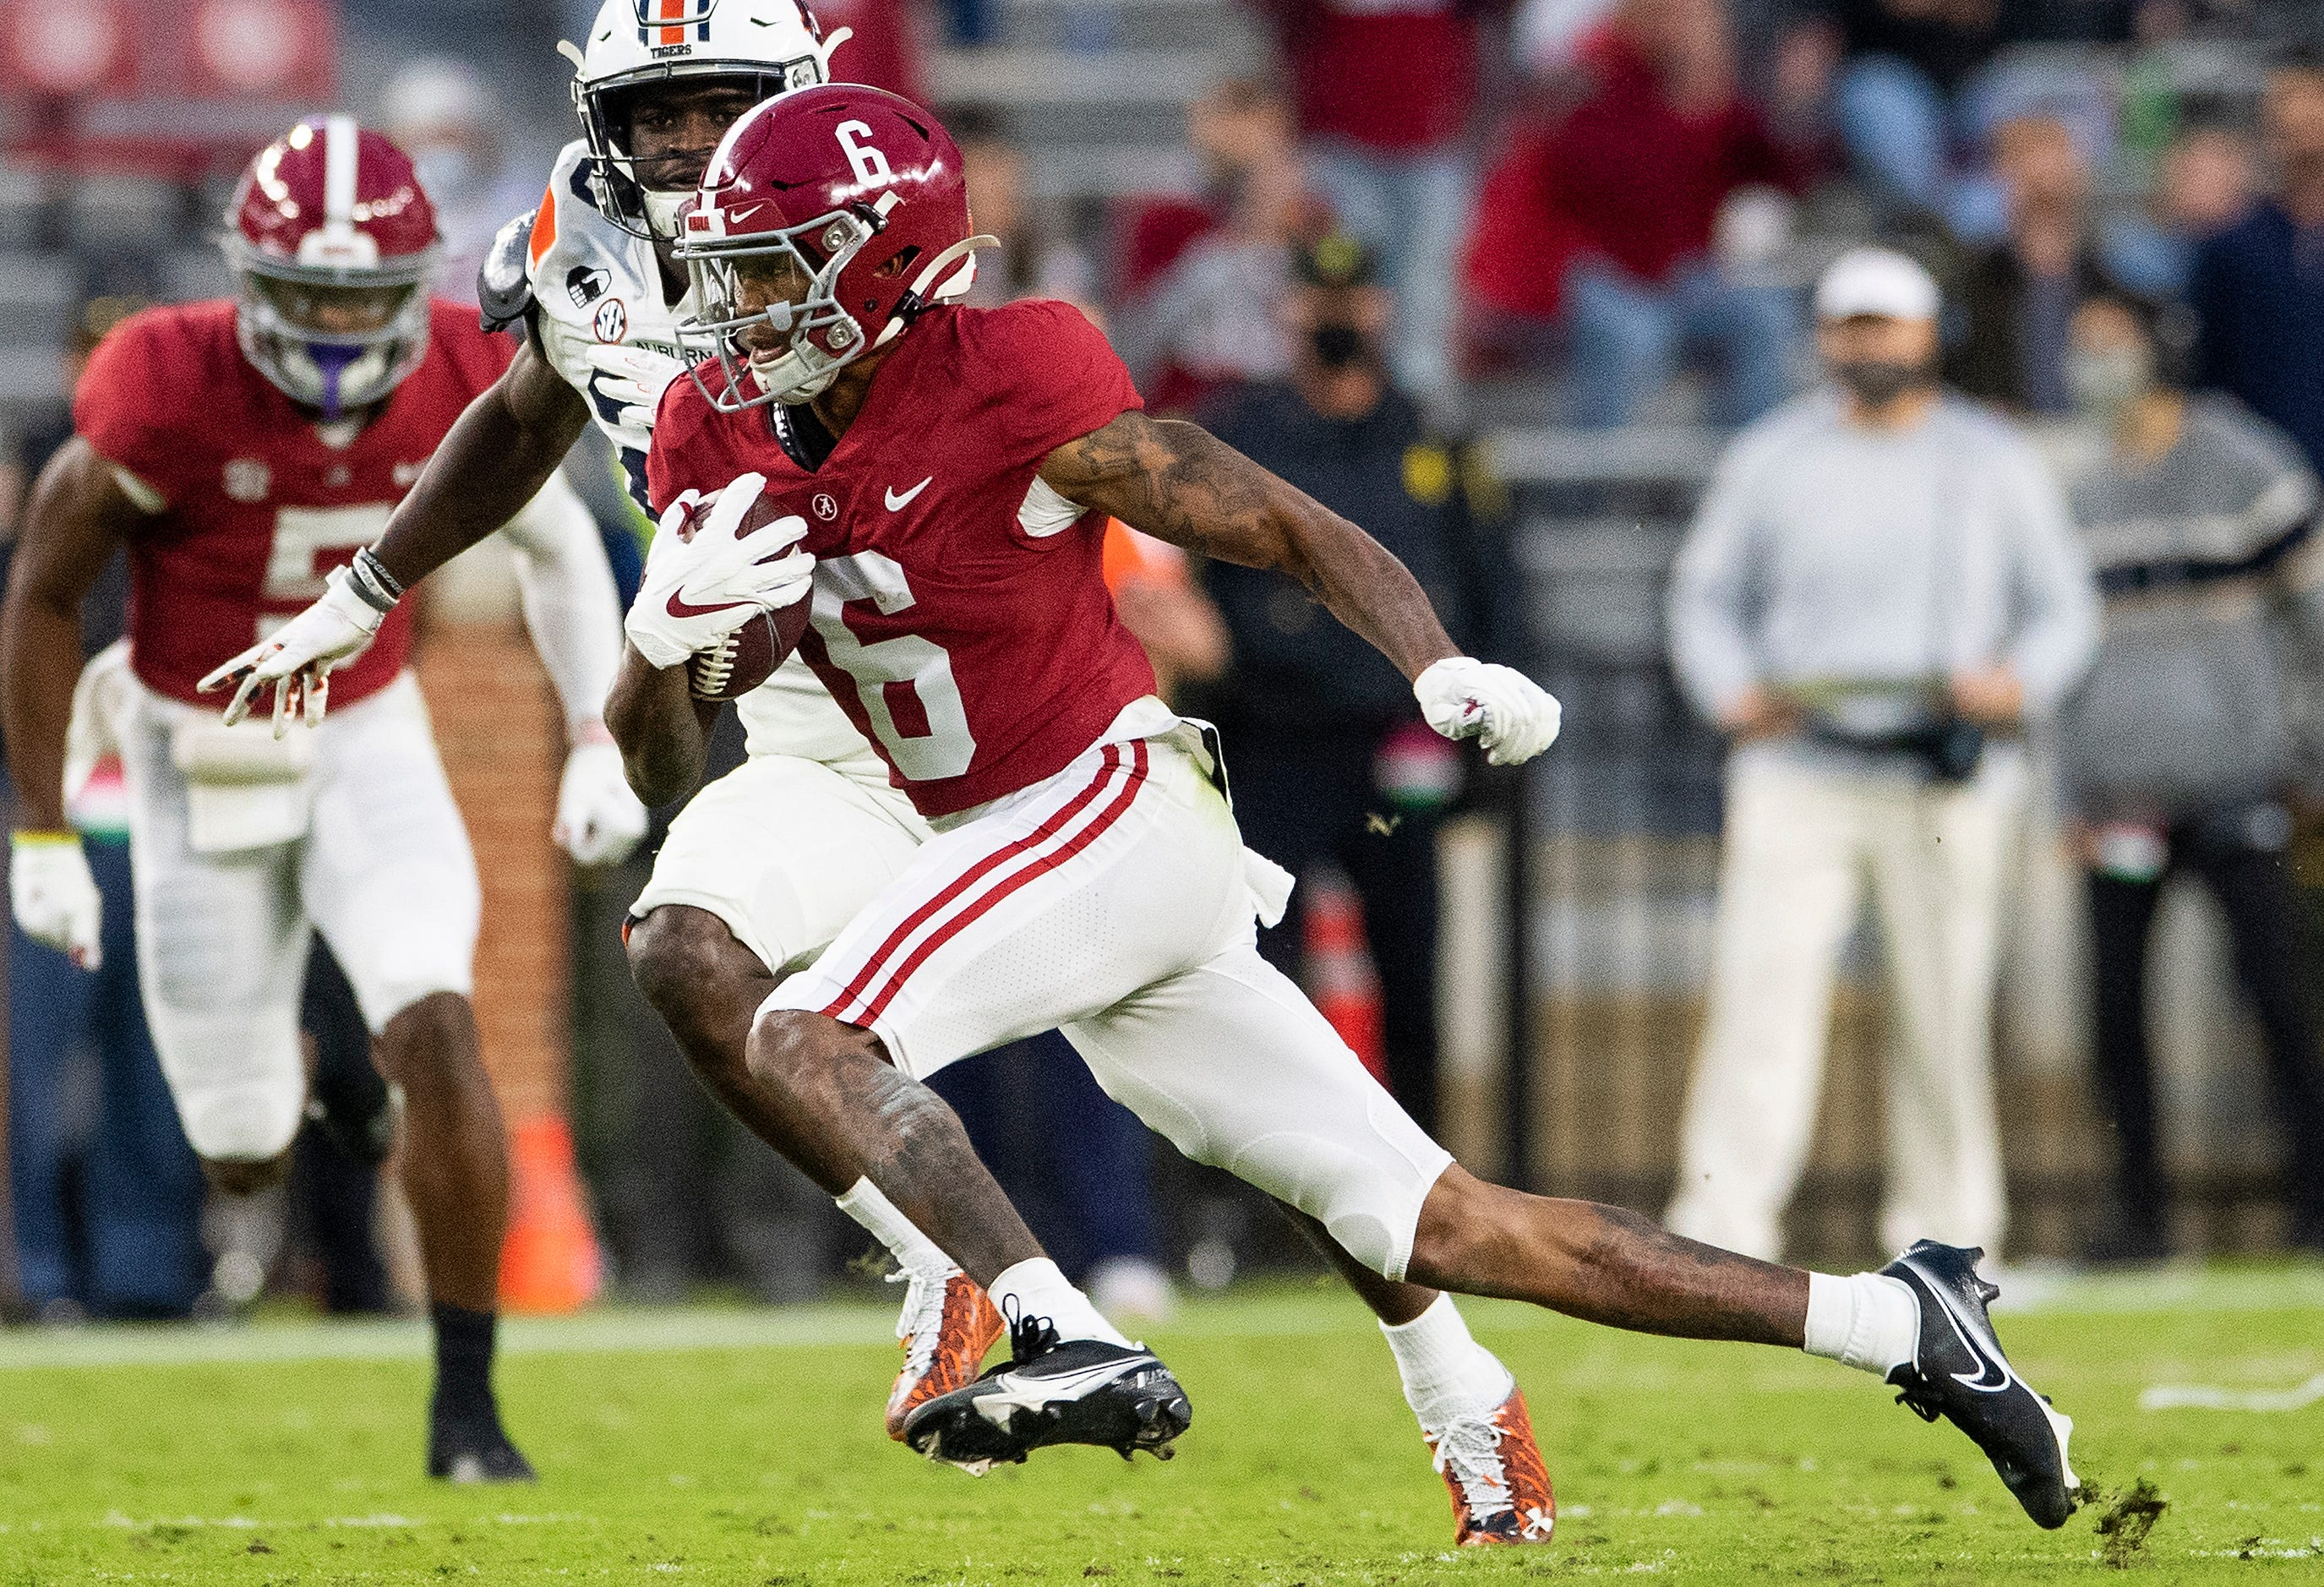 Alabama, Notre Dame the clear top two in NCAA football Re-Rank 1-127